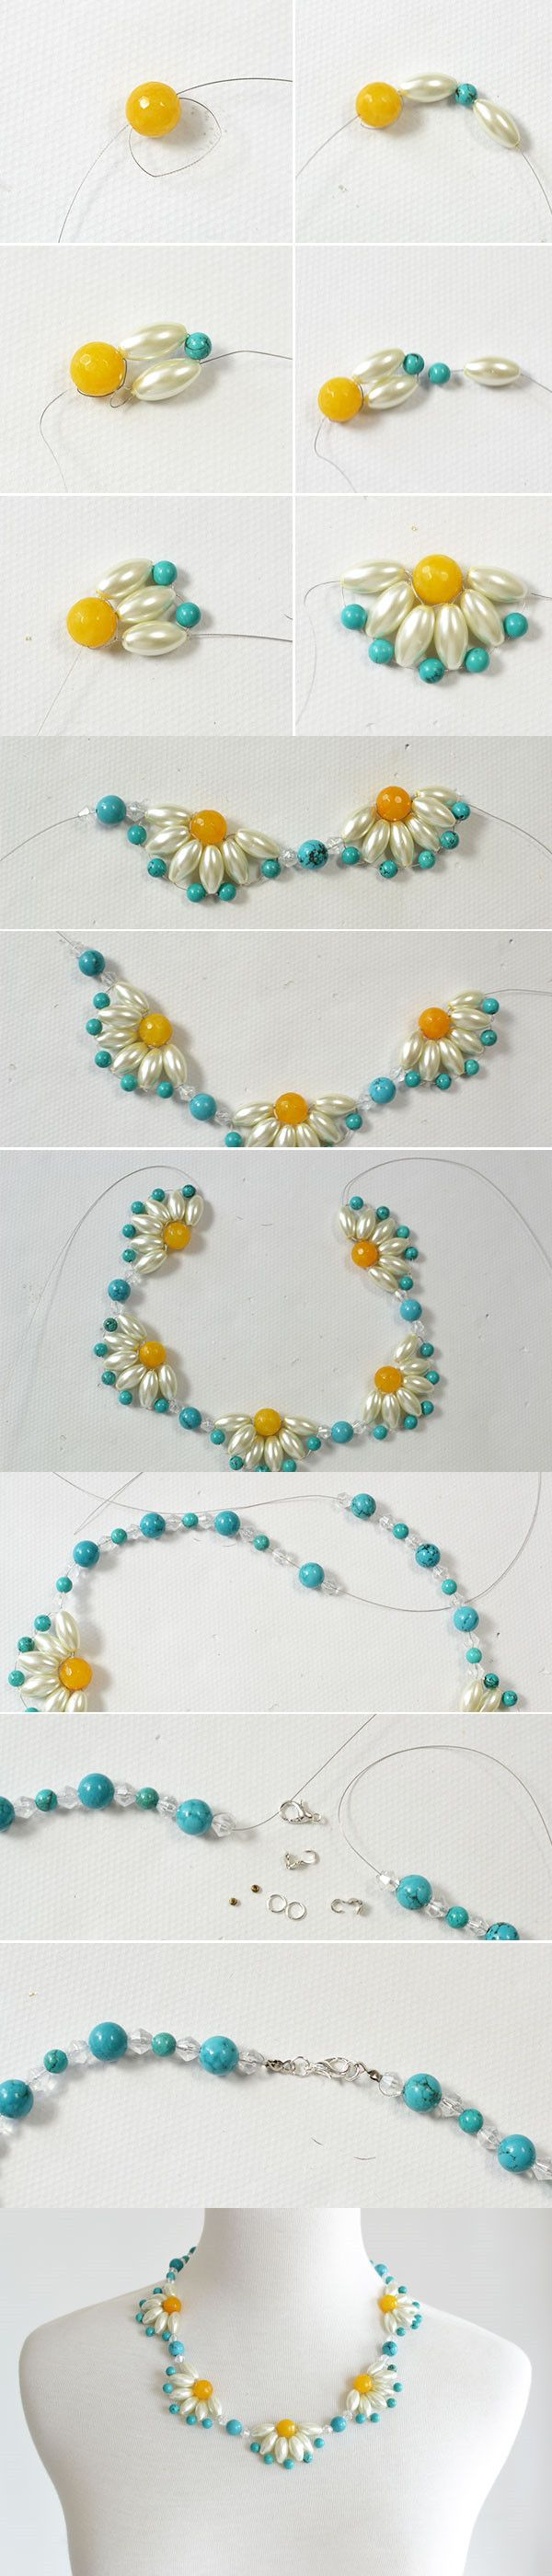 Tutorial - How to DIY a Flower Choker Necklace Step by Step from ...